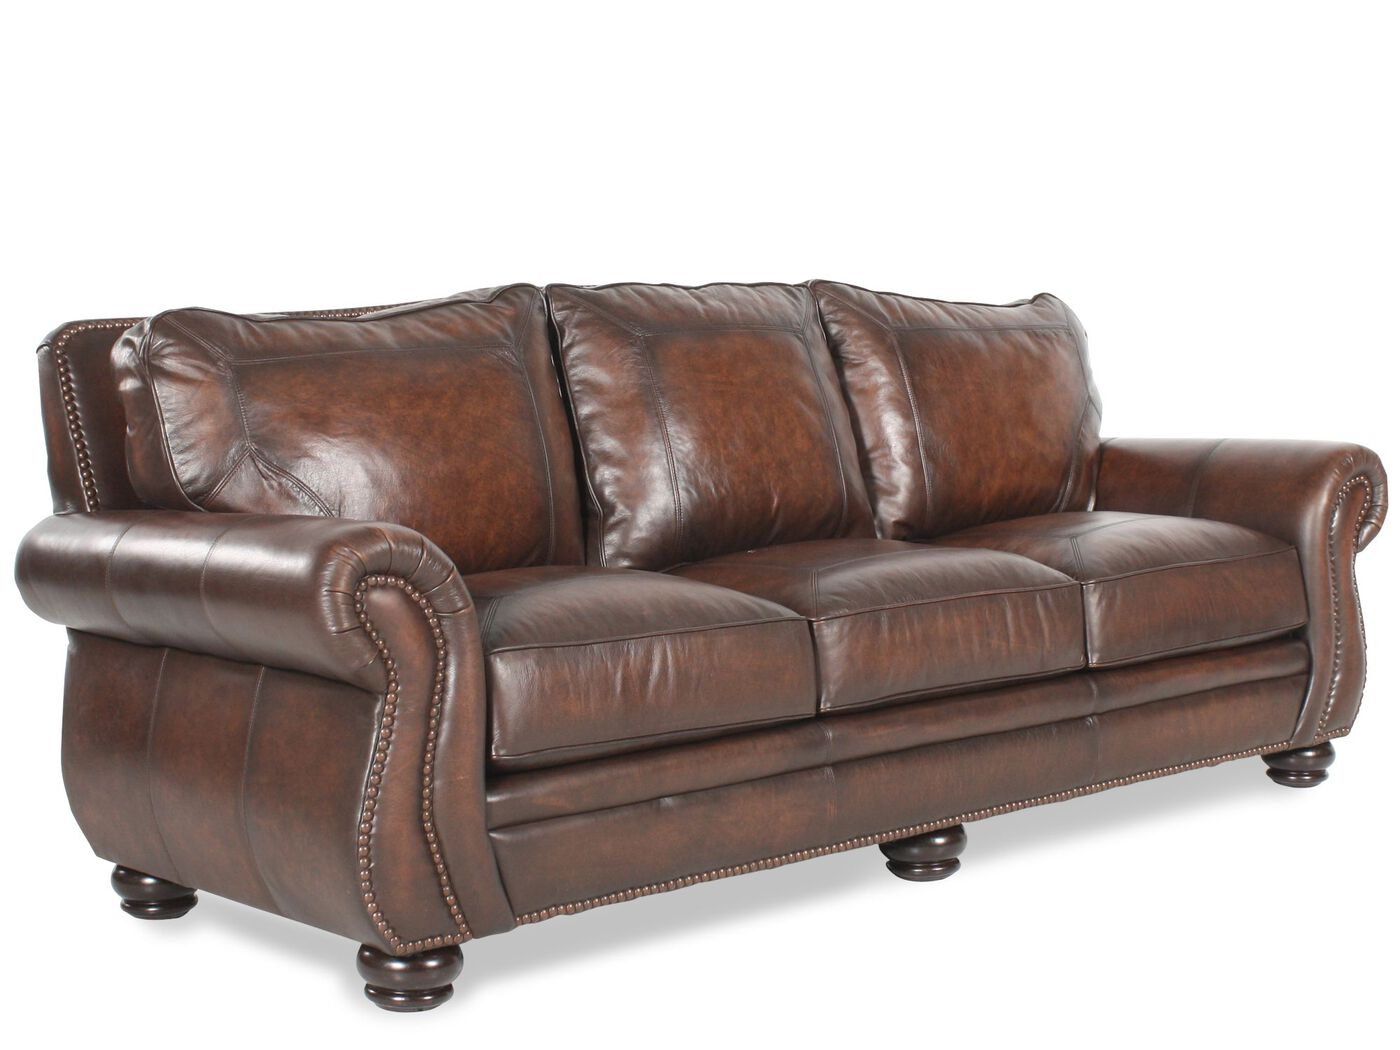 Leather Couches bernhardt leather sofa | mathis brothers